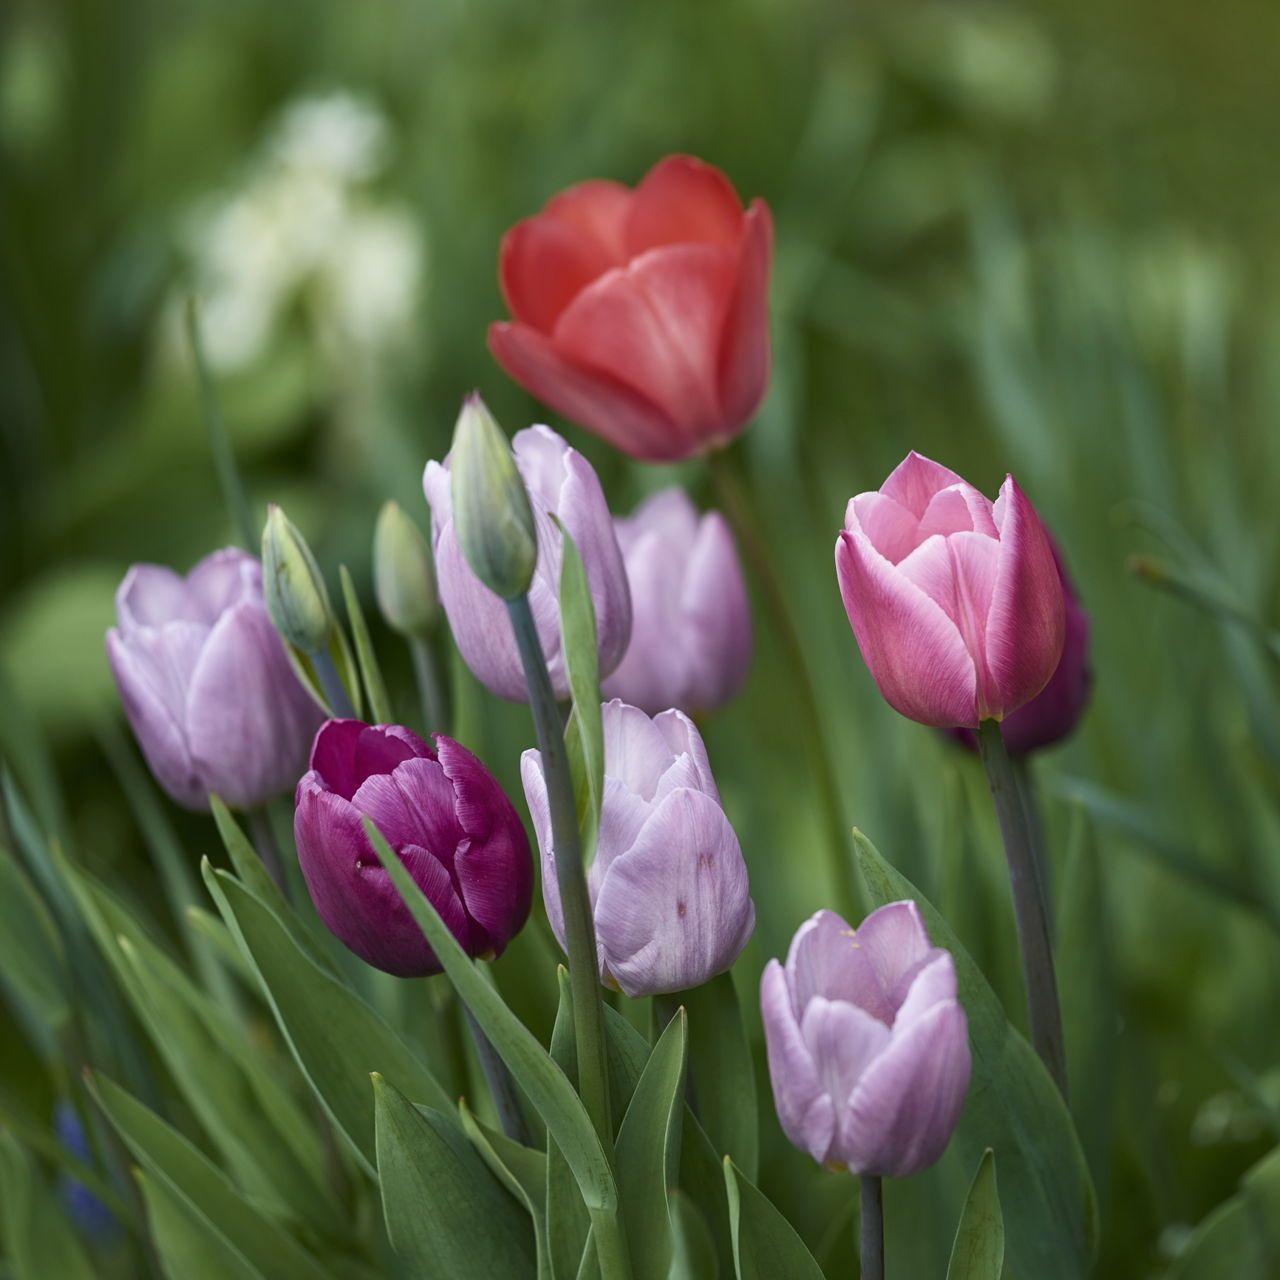 How To Care For Tulip Bulbs After Bloom To Keep Them Looking Beautiful In 2020 Tulip Bulbs Bloom Indoor Flowers